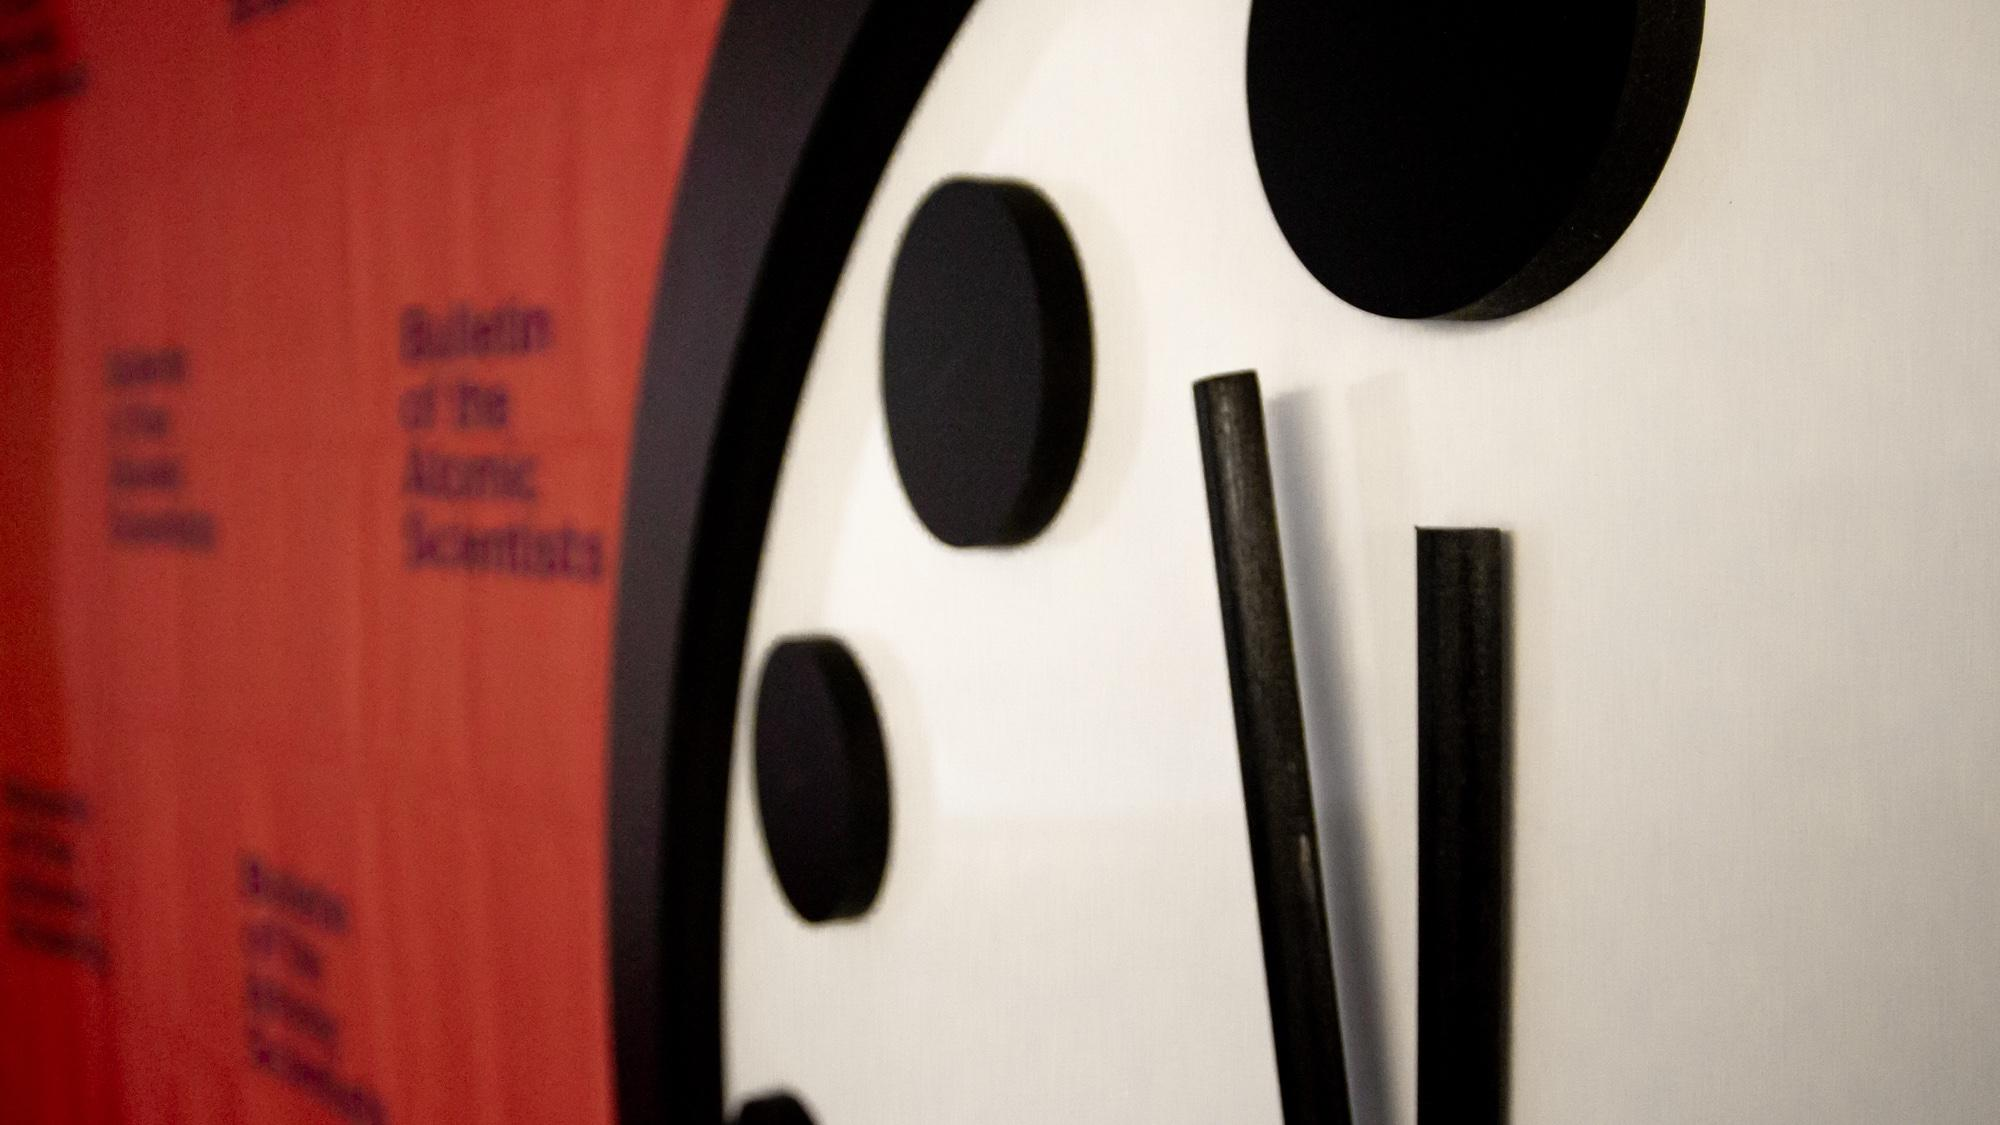 The Doomsday Clock is set at 100 seconds to midnight. (Courtesy of Bulletin of the Atomic Scientists)